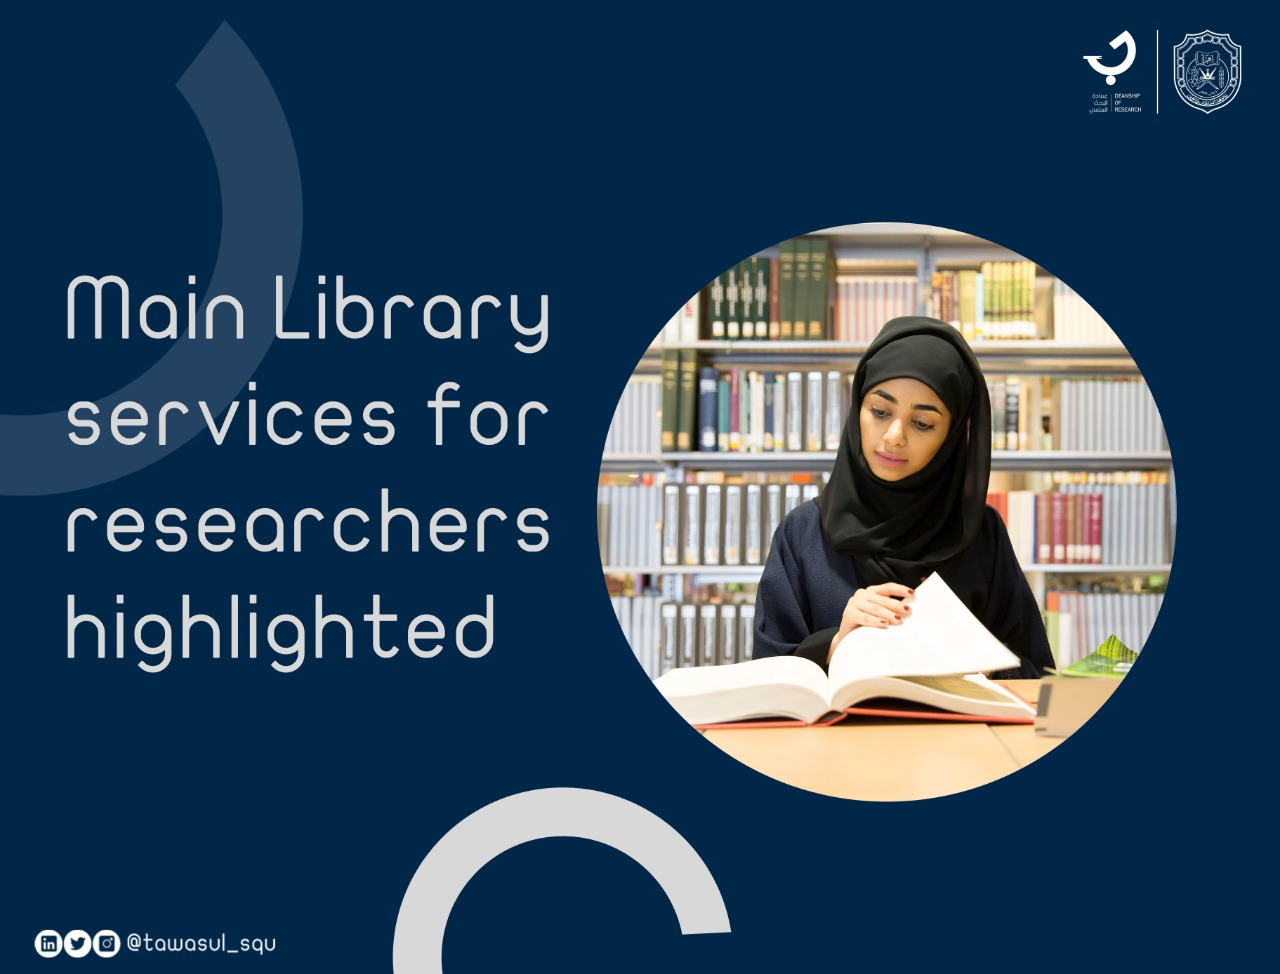 Main Library services for researchers highlighted